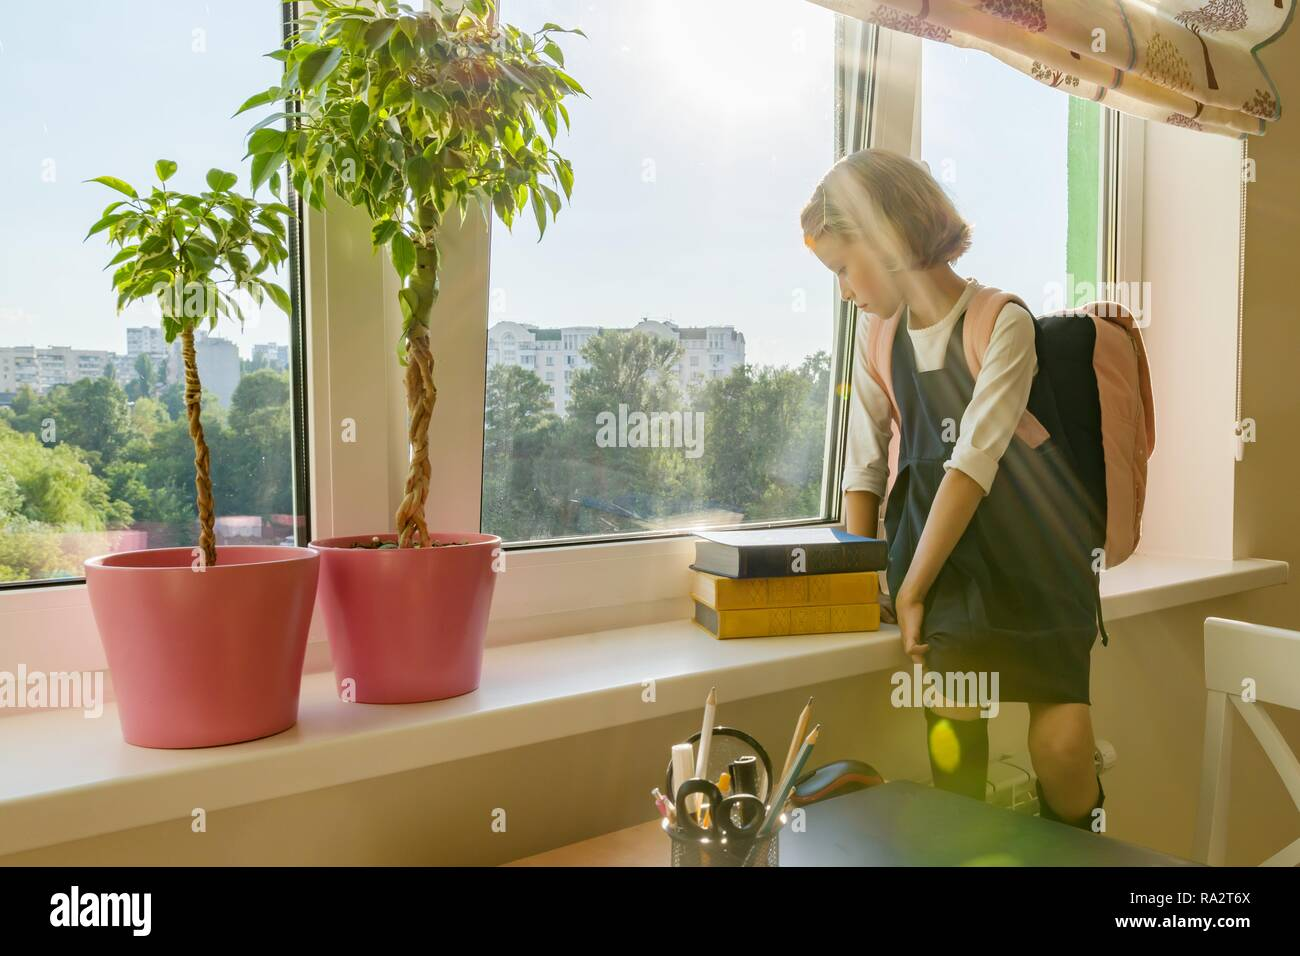 Little girl student with backpack in school uniform looks out the window, background is children's room, desk, computer. School, education, knowledge  Stock Photo